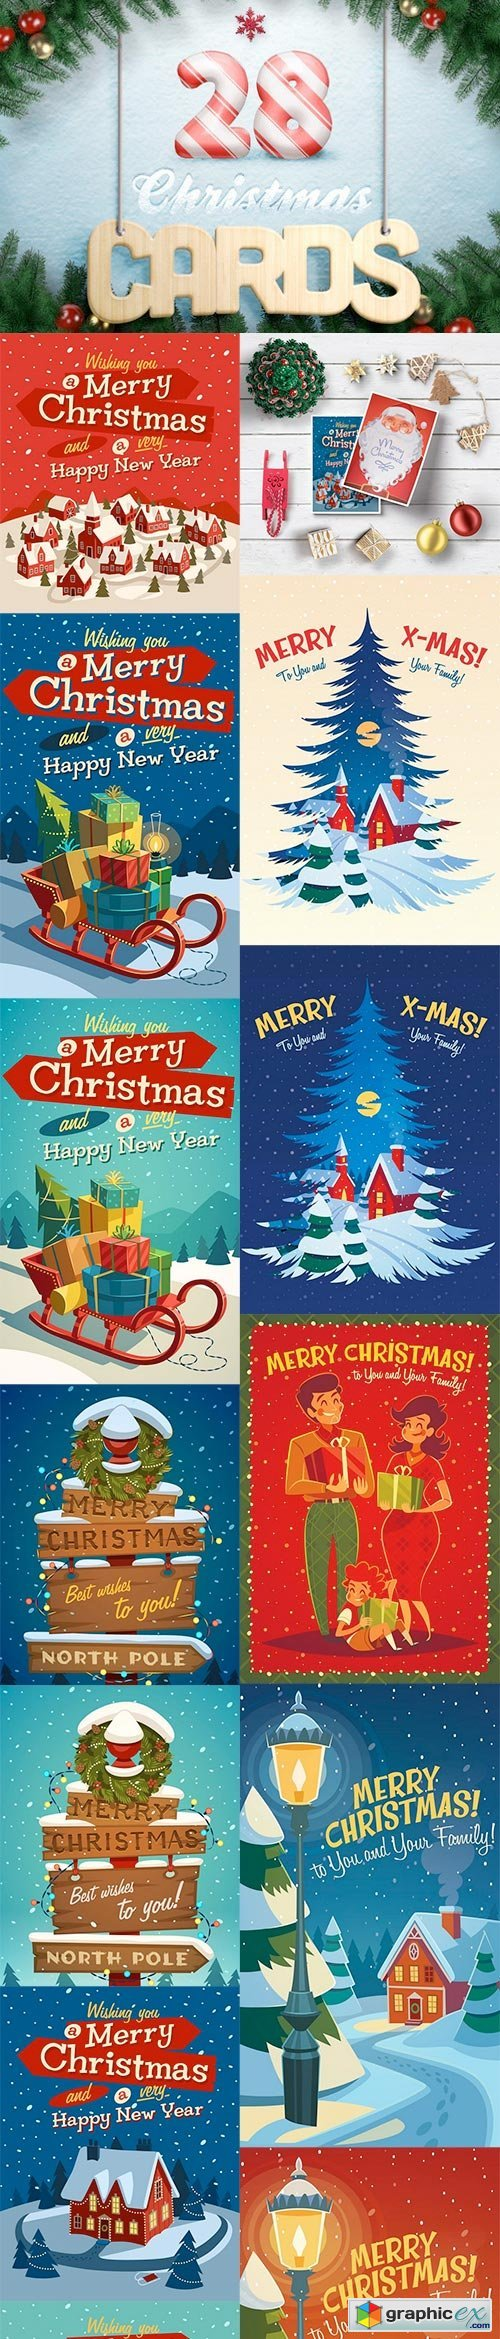 28 Christmas Cards Illustrations